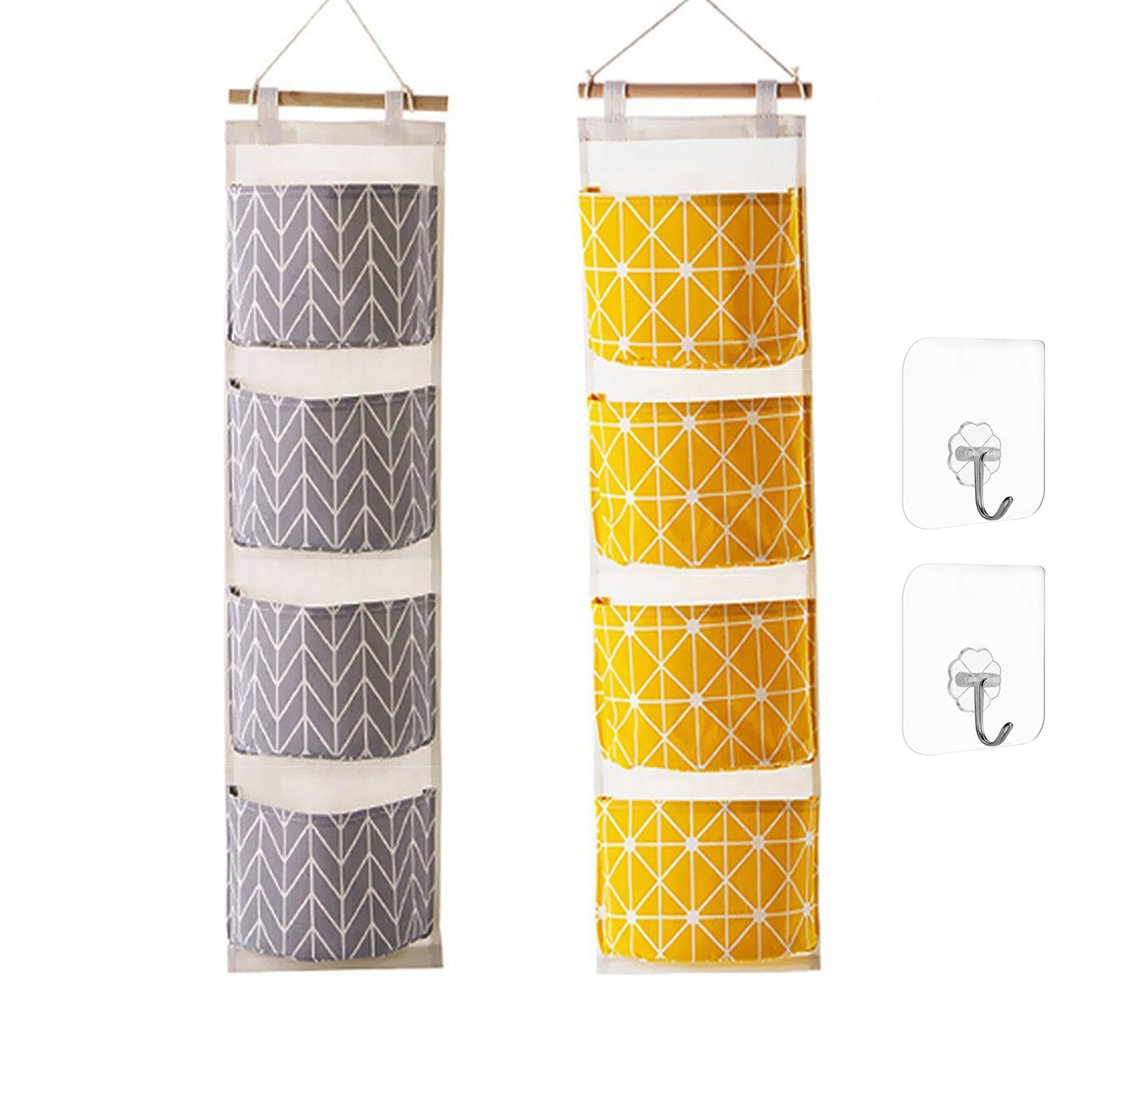 Ricye Wall Door Closet Hanging Storage Bag Cotton Fabric 4 Pockets Over The Door Organizer Pouch, 2 Pcs Adhesive Wall Hooks, 2 Pack (Gray+Yellow)